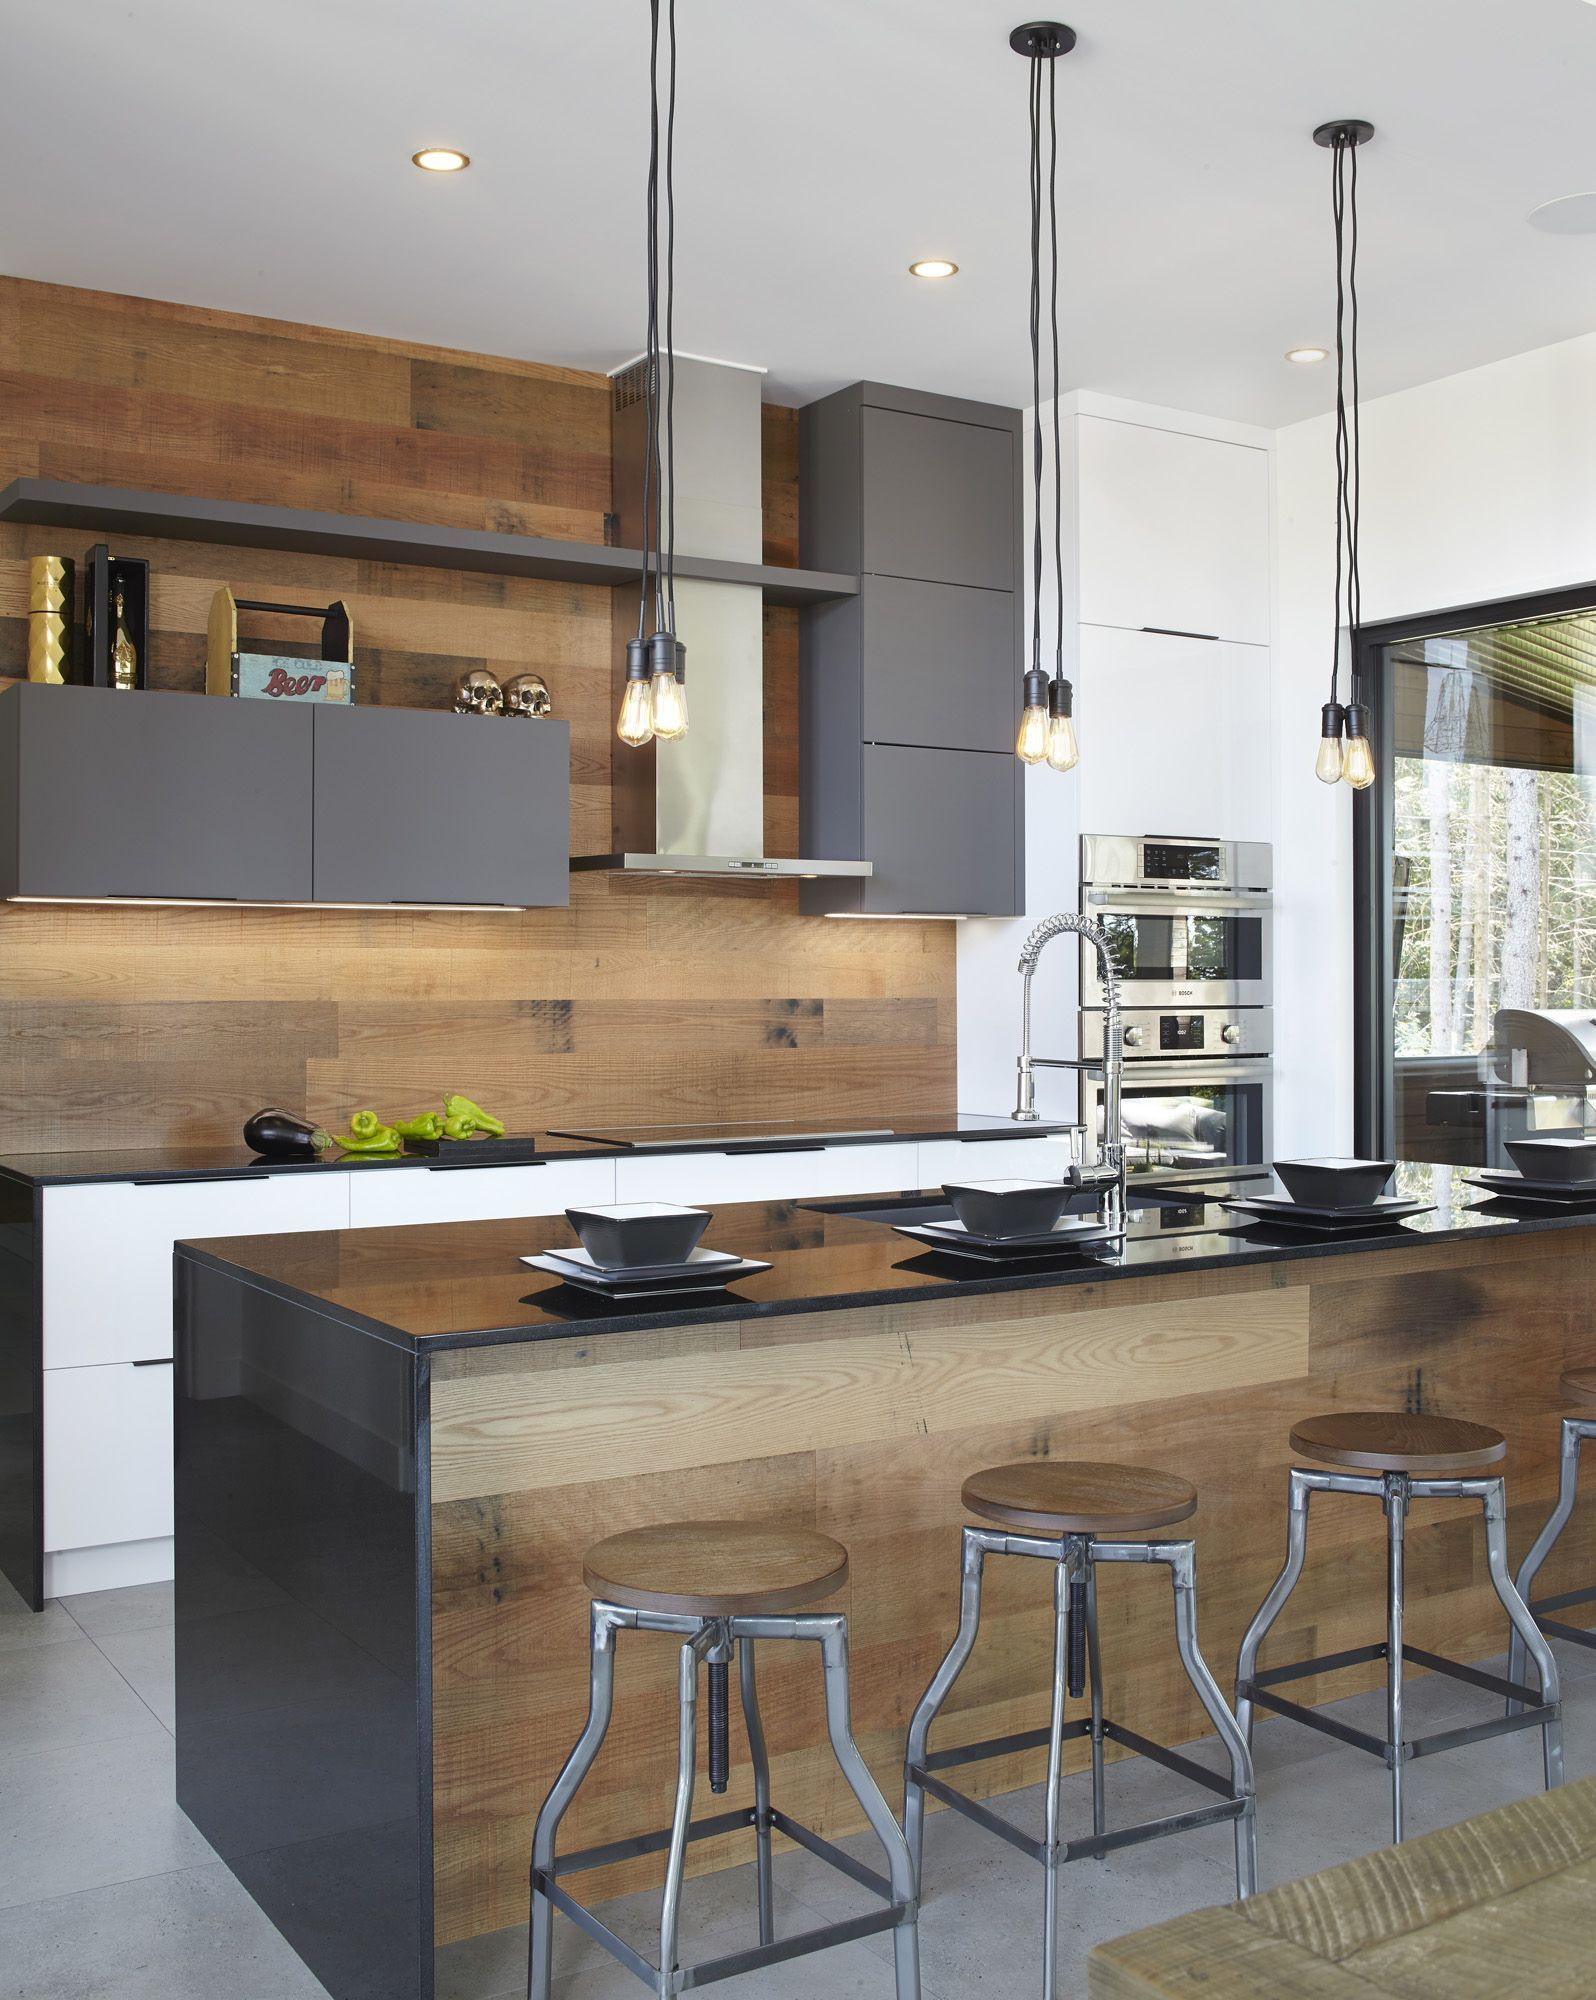 J Aime Le Dosseret Www Armoiressimar Refacing Kitchen Cabinets Refinishing Cabinets Kitchen Design